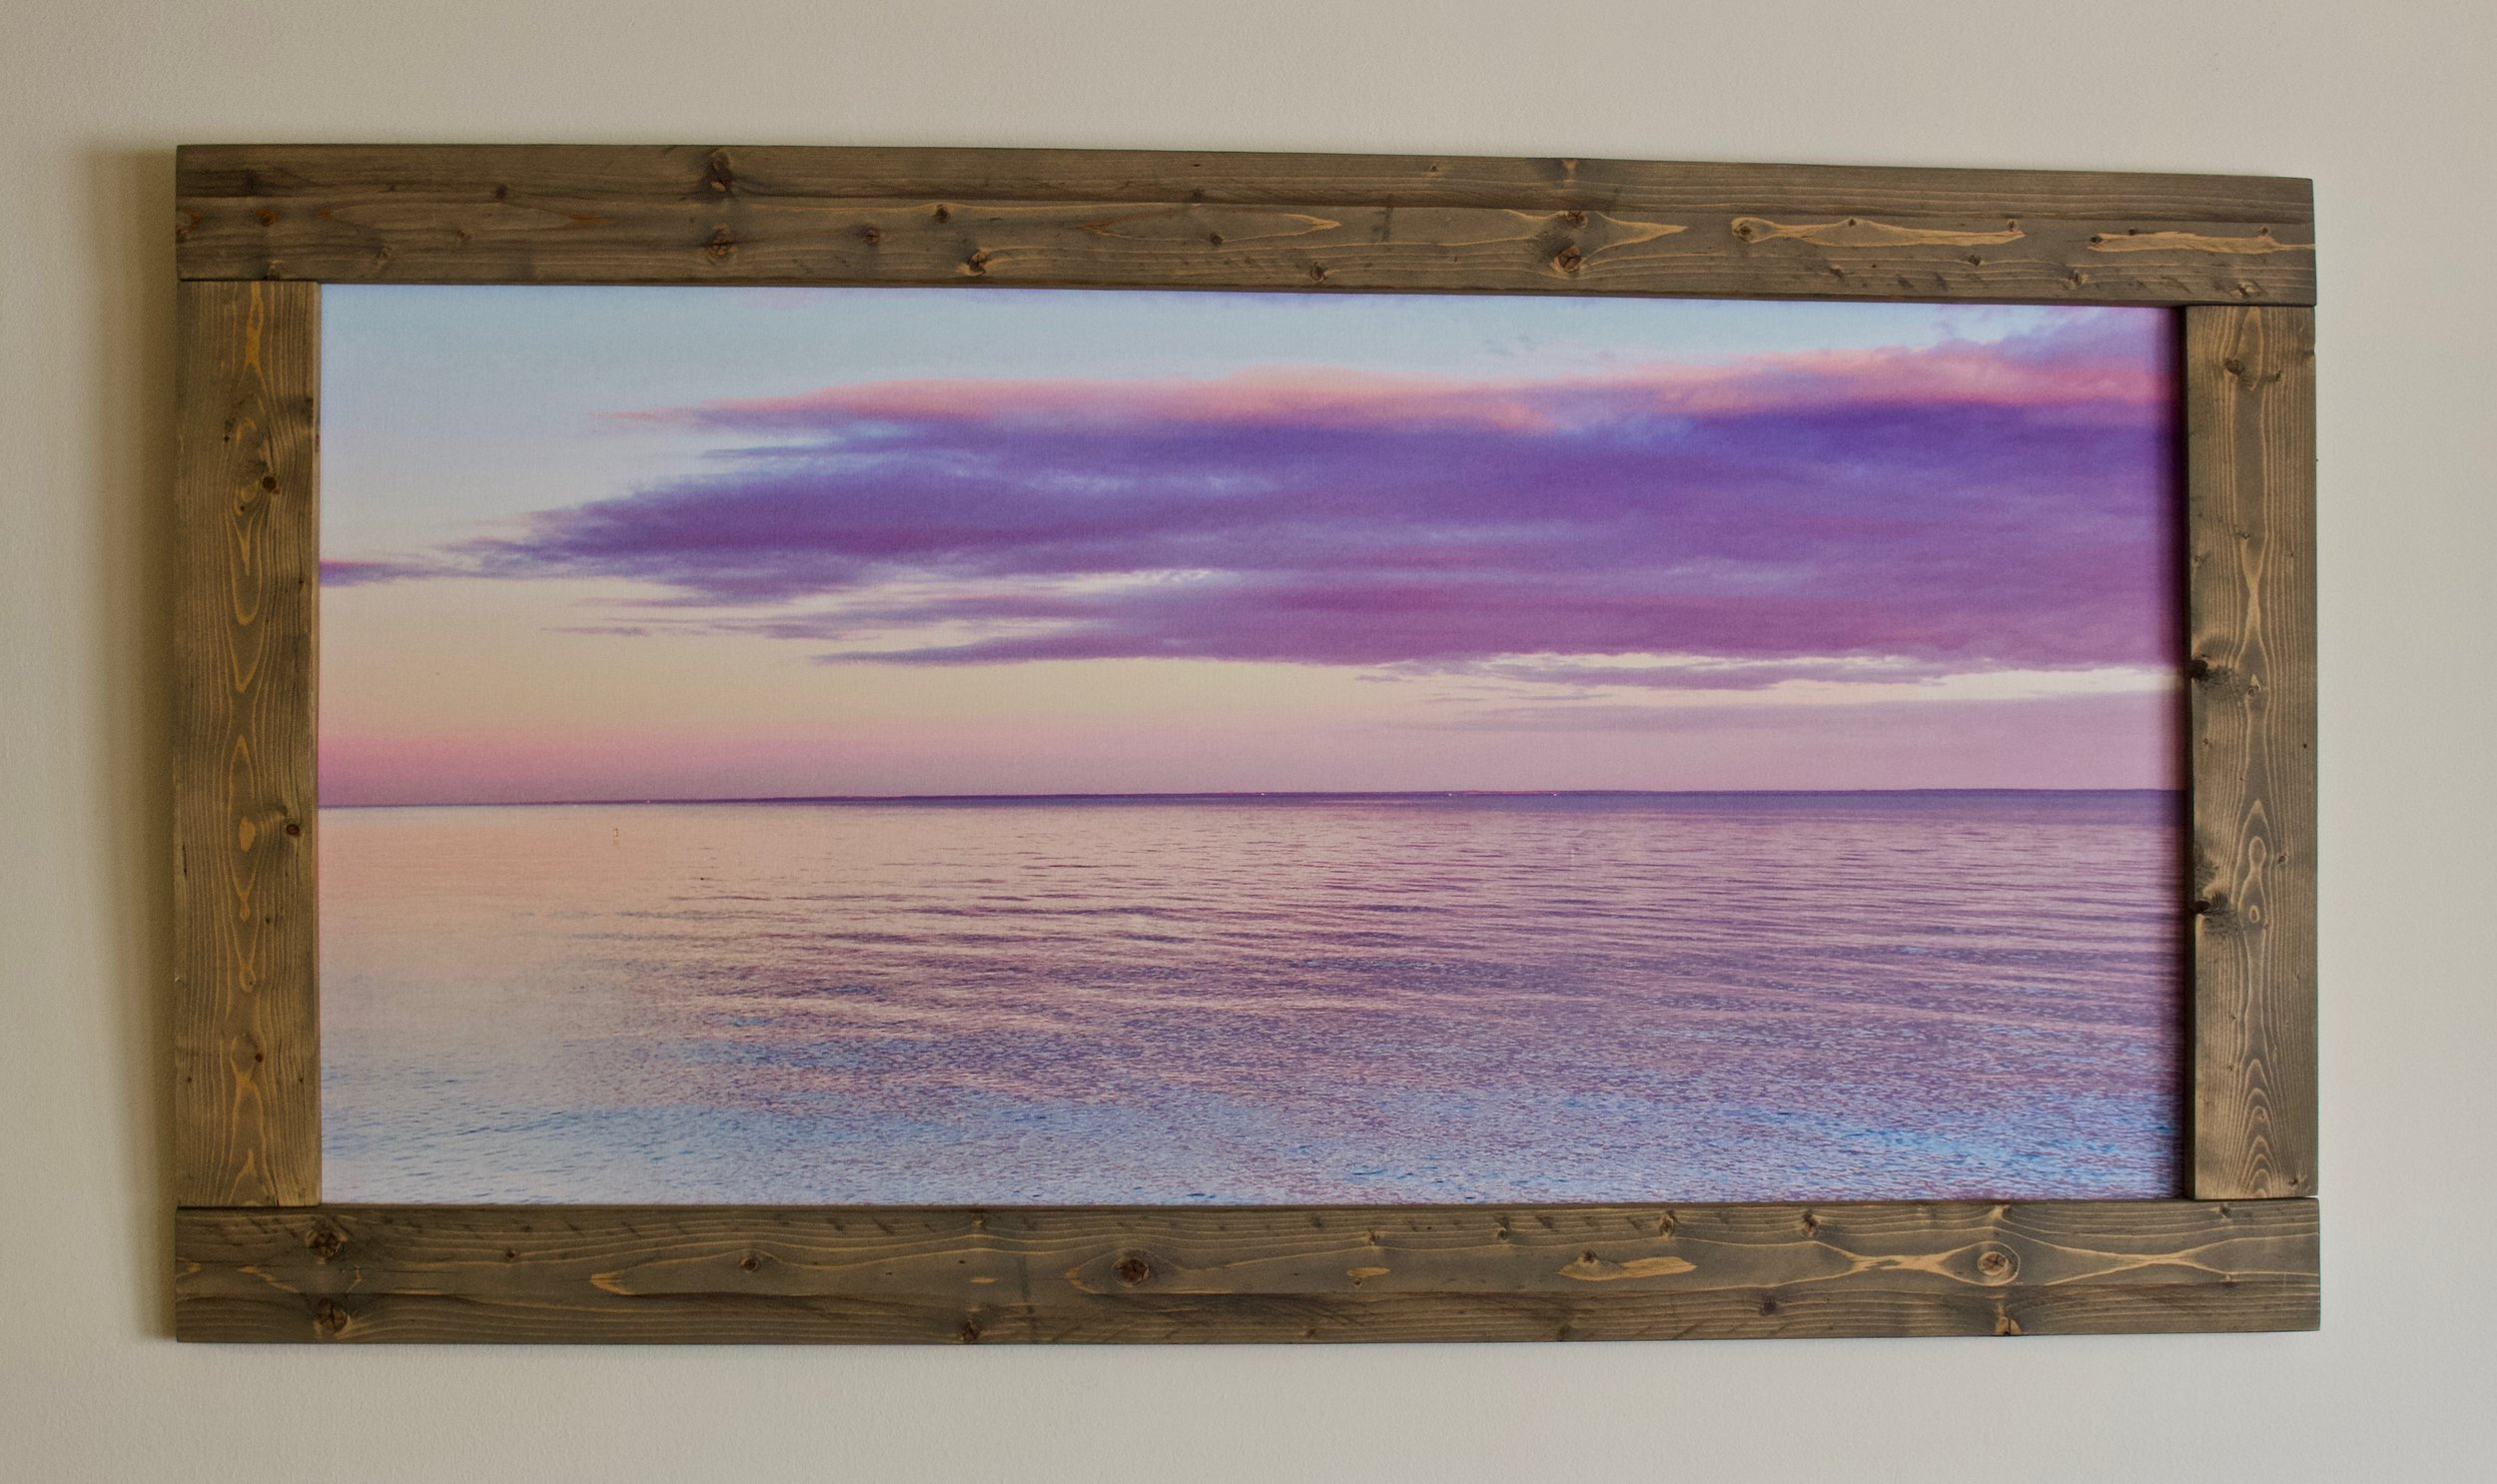 Cotton Candy Skies Over Sherwood Island State Park (48x20)